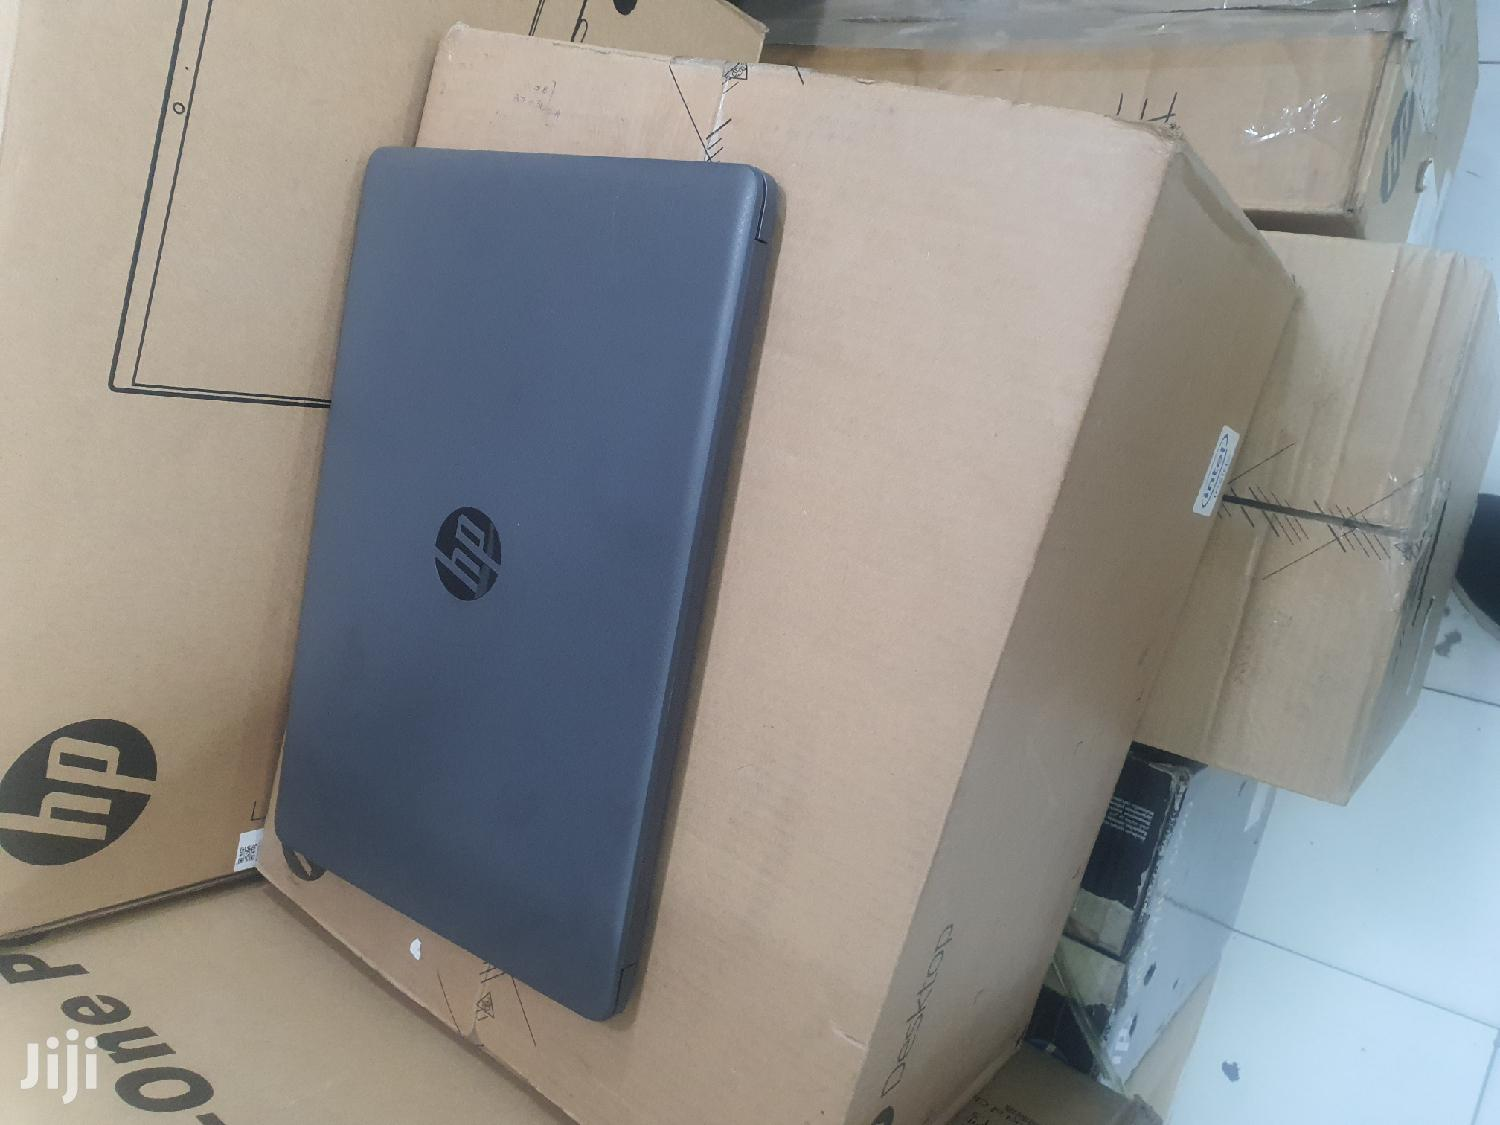 New Laptop HP Pavilion 15 8GB Intel Core i7 HDD 1T | Laptops & Computers for sale in Nairobi Central, Nairobi, Kenya